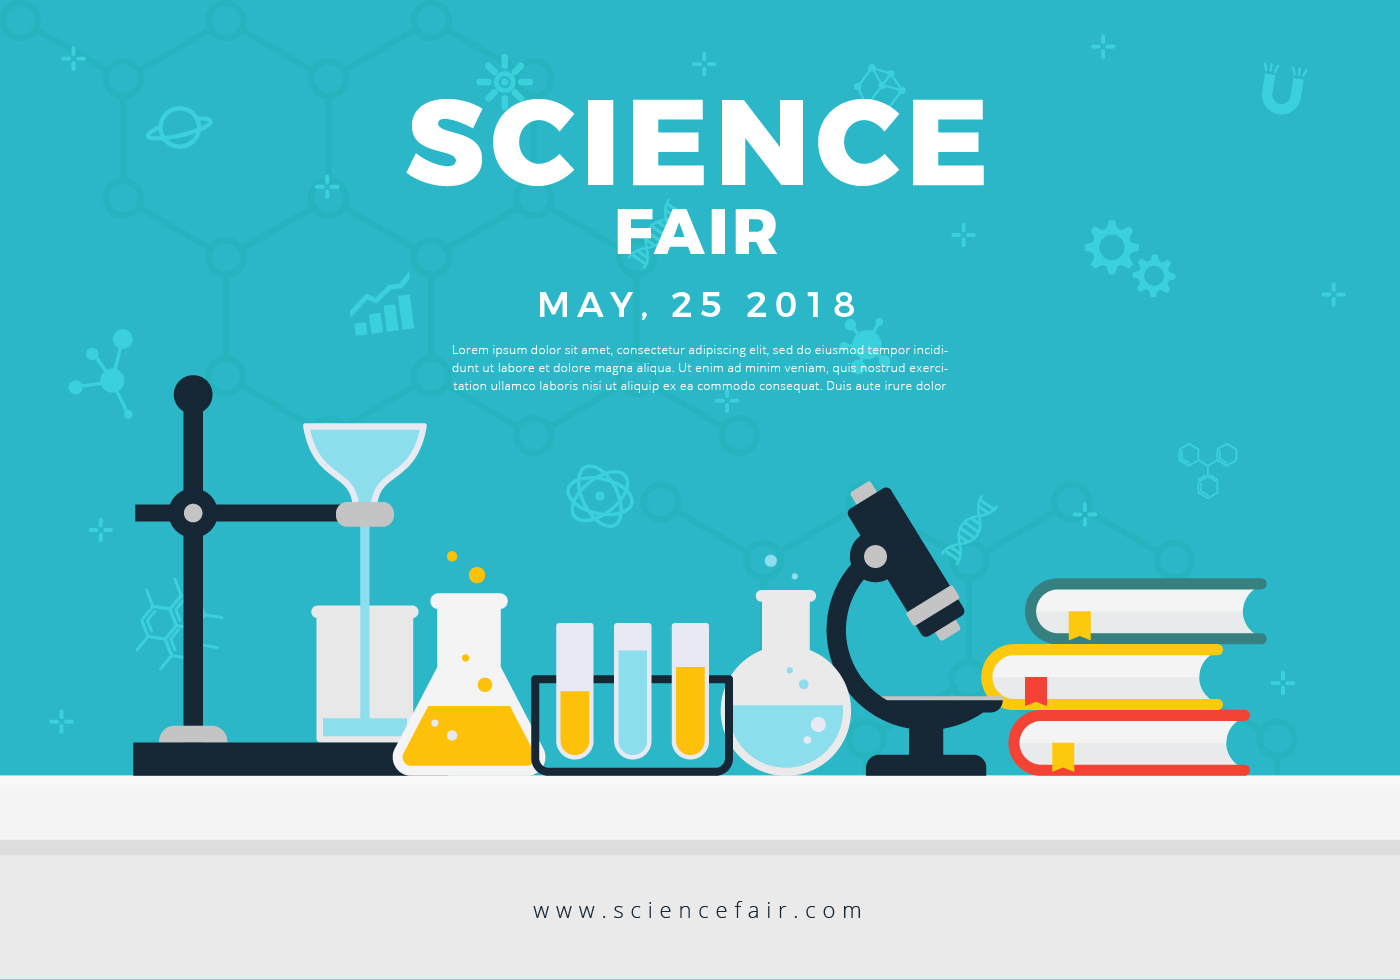 Science Fair Poster Banner 21 Vector Art at Vecteezy Intended For Science Fair Banner Template